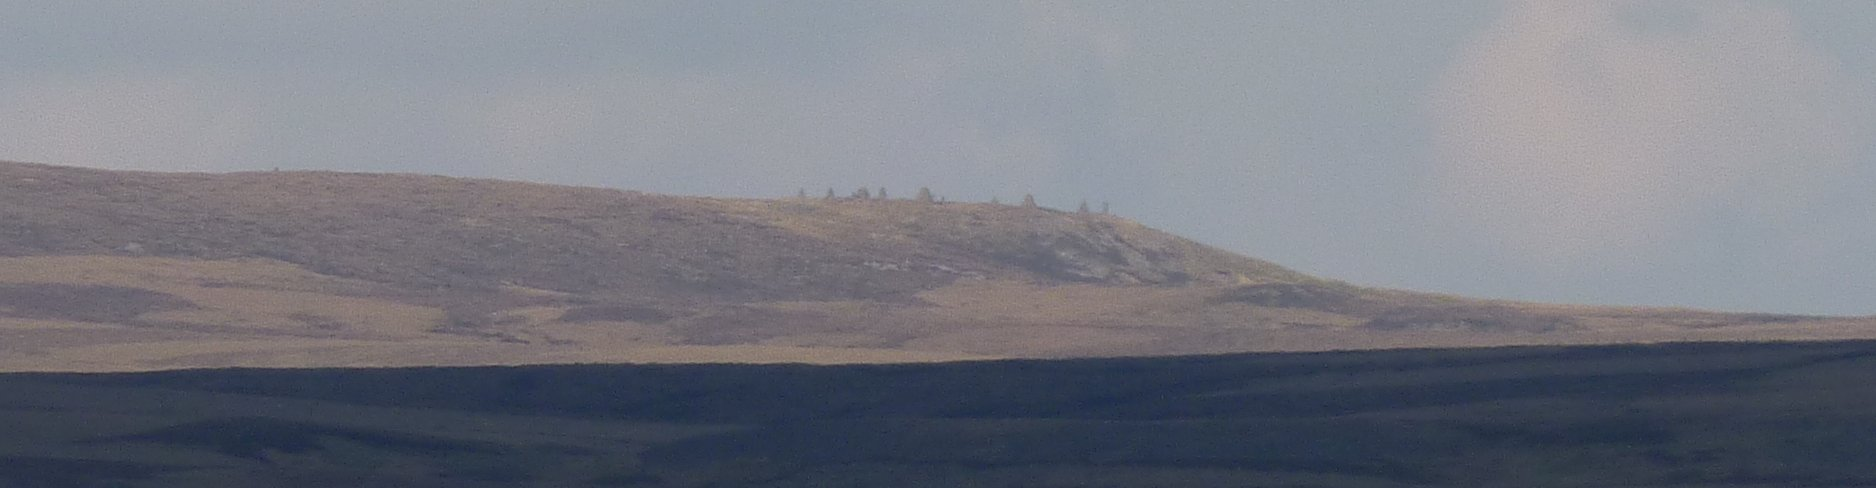 Nine Standards Rigg, just about visible from the path to Tan Hill